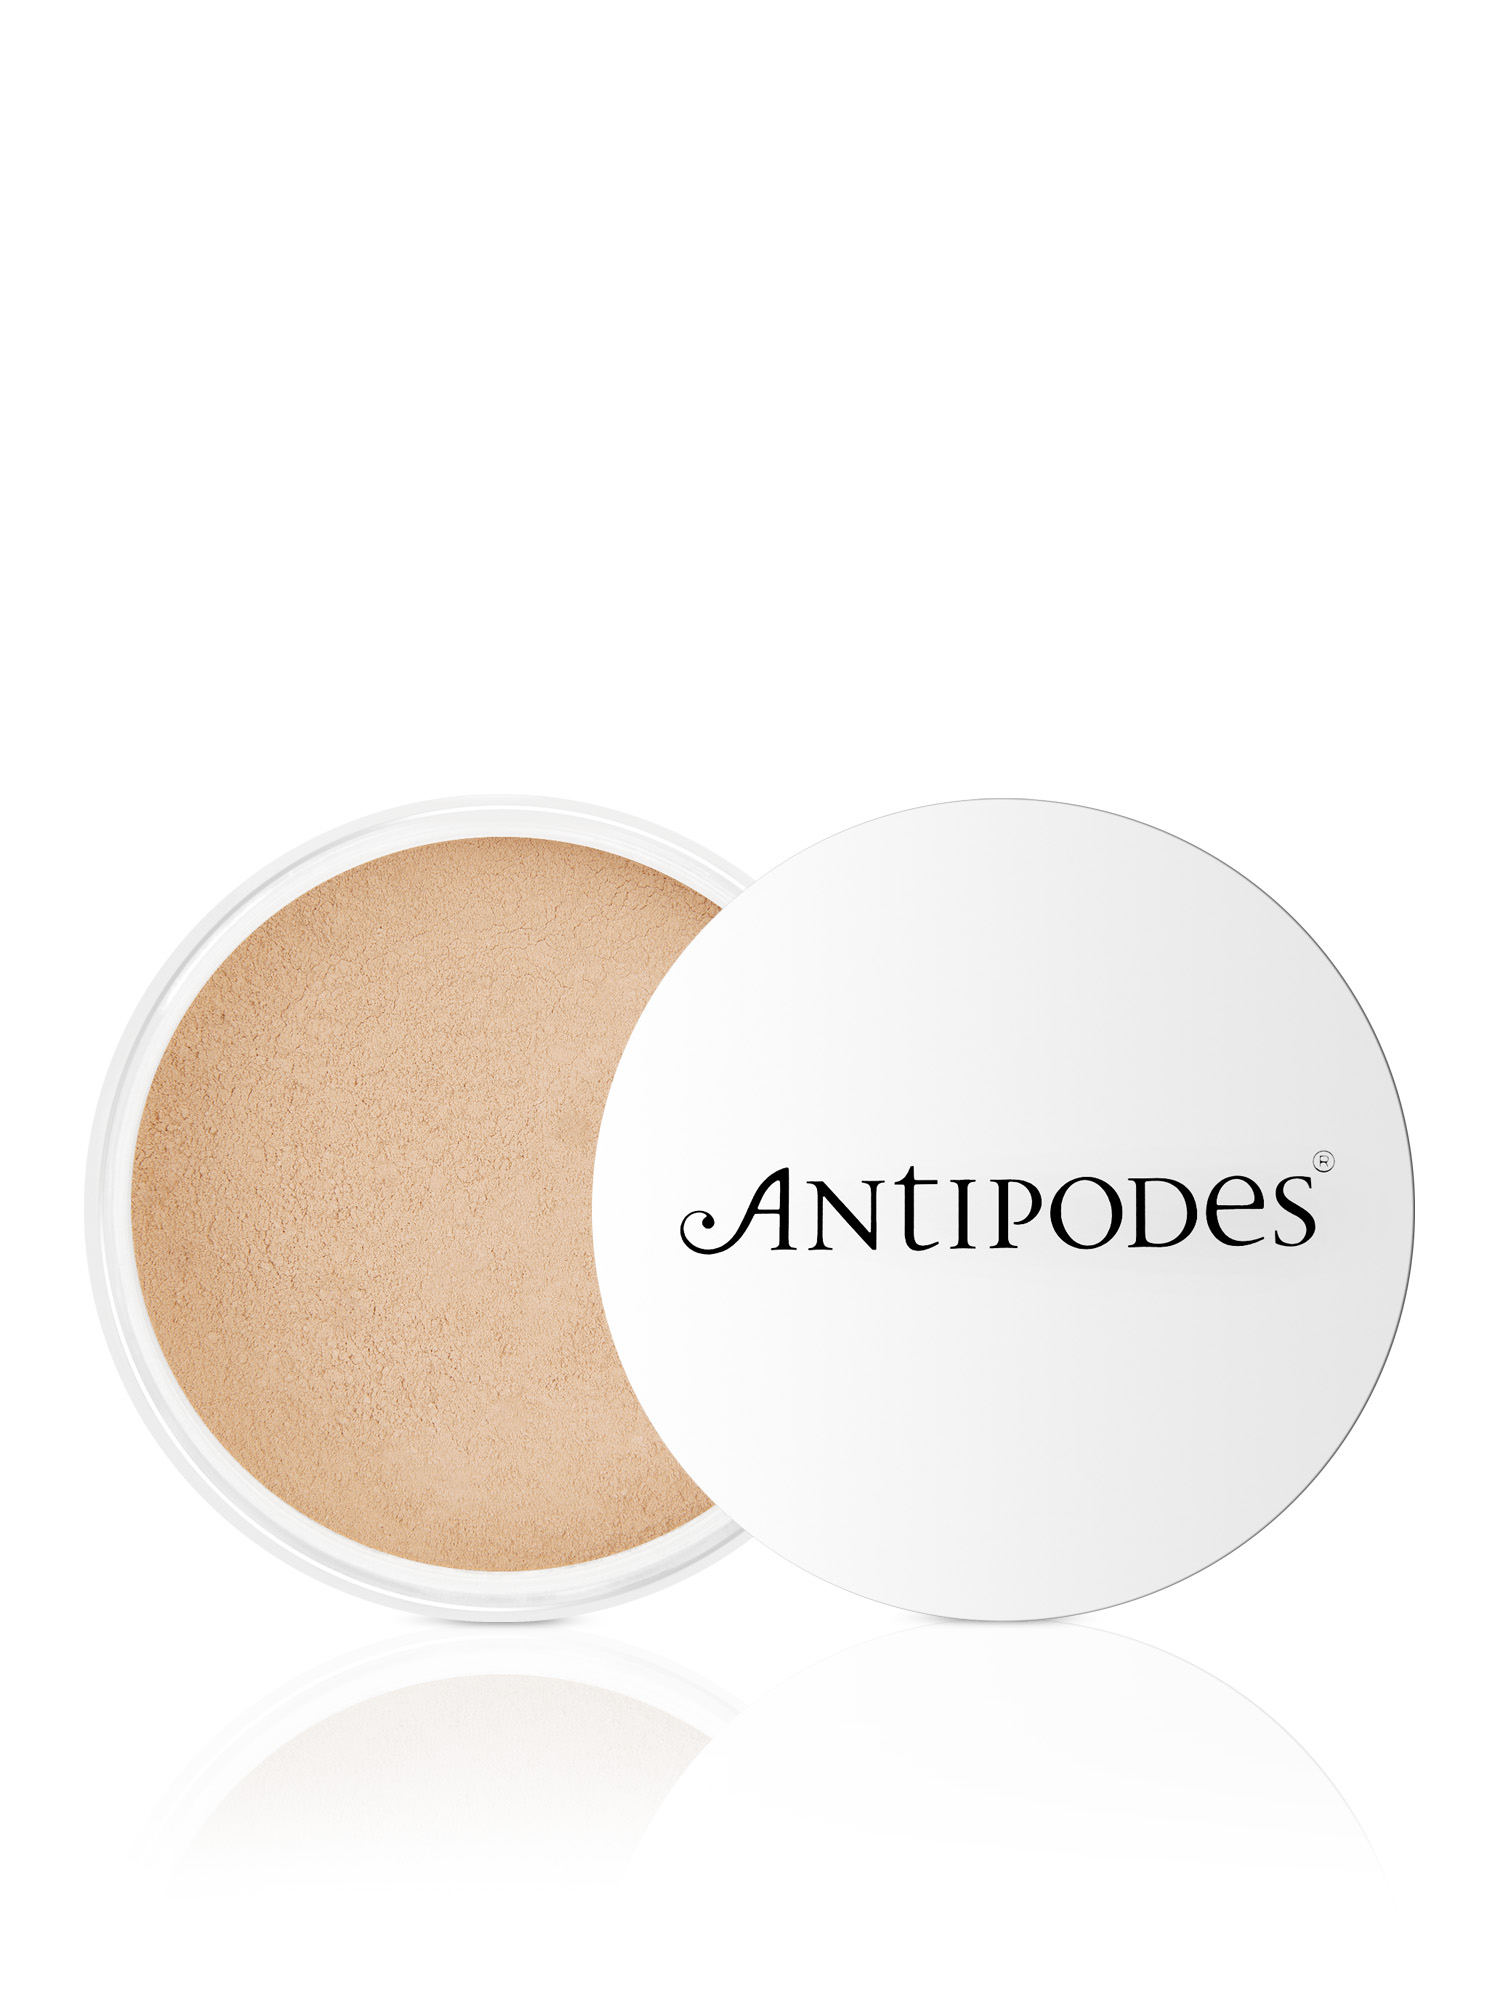 Antipodes Performance Plus Mineral Foundation with SPF 17 - Medium Beige (03)